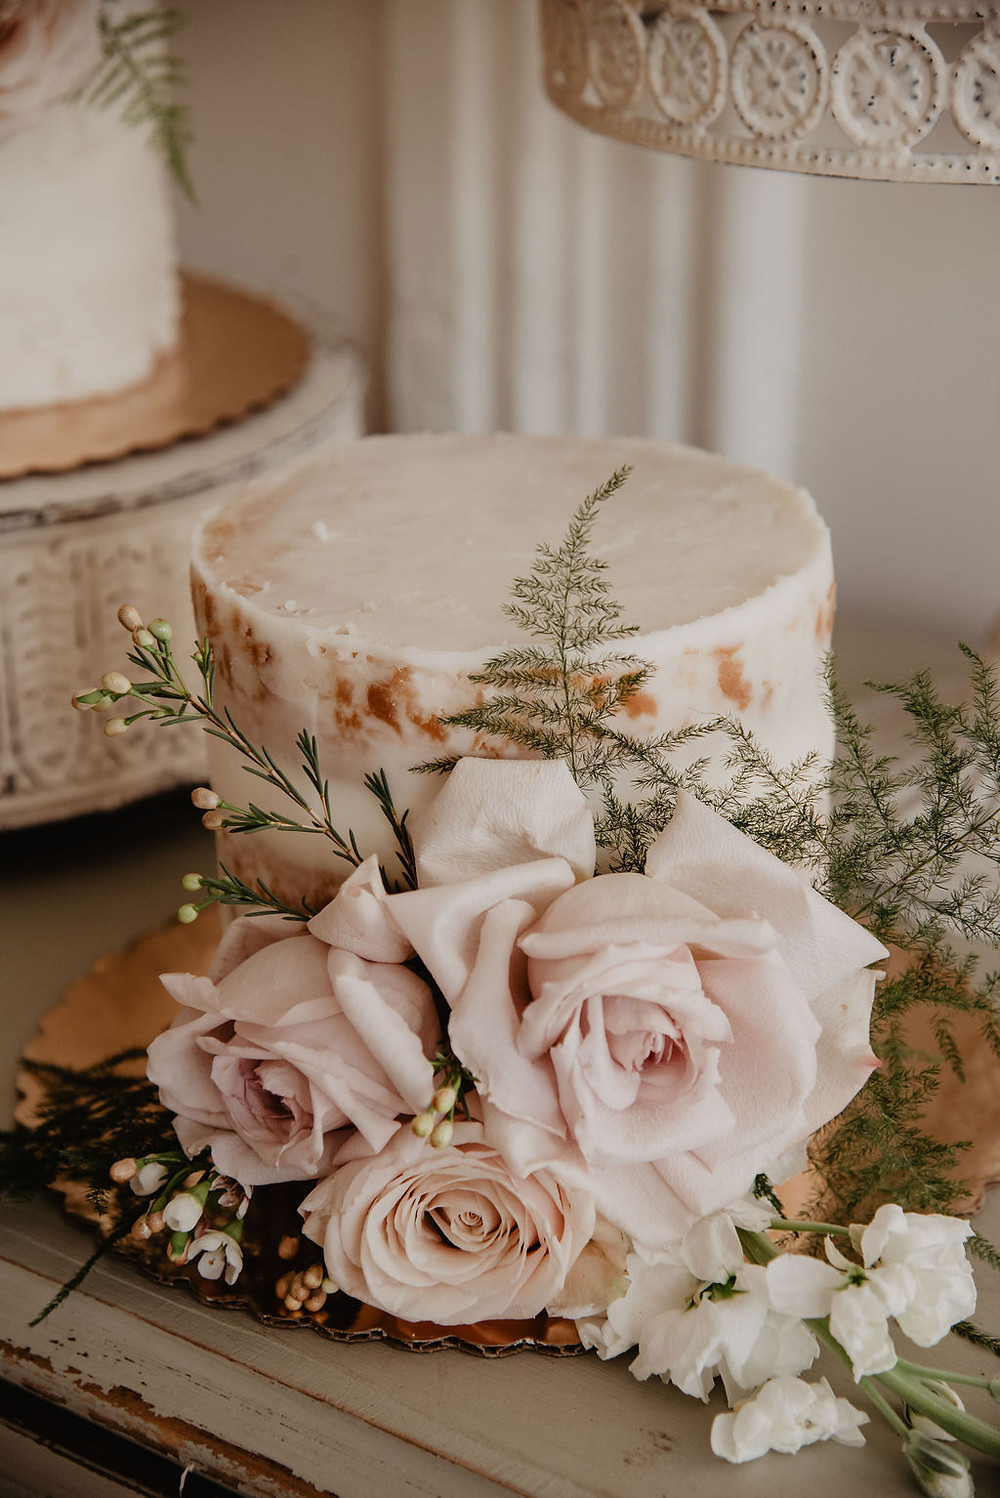 Sweet Spring Inspired Styled Shoot at The Lincoln Loft and Studio | Pretty Little Vintage Co.